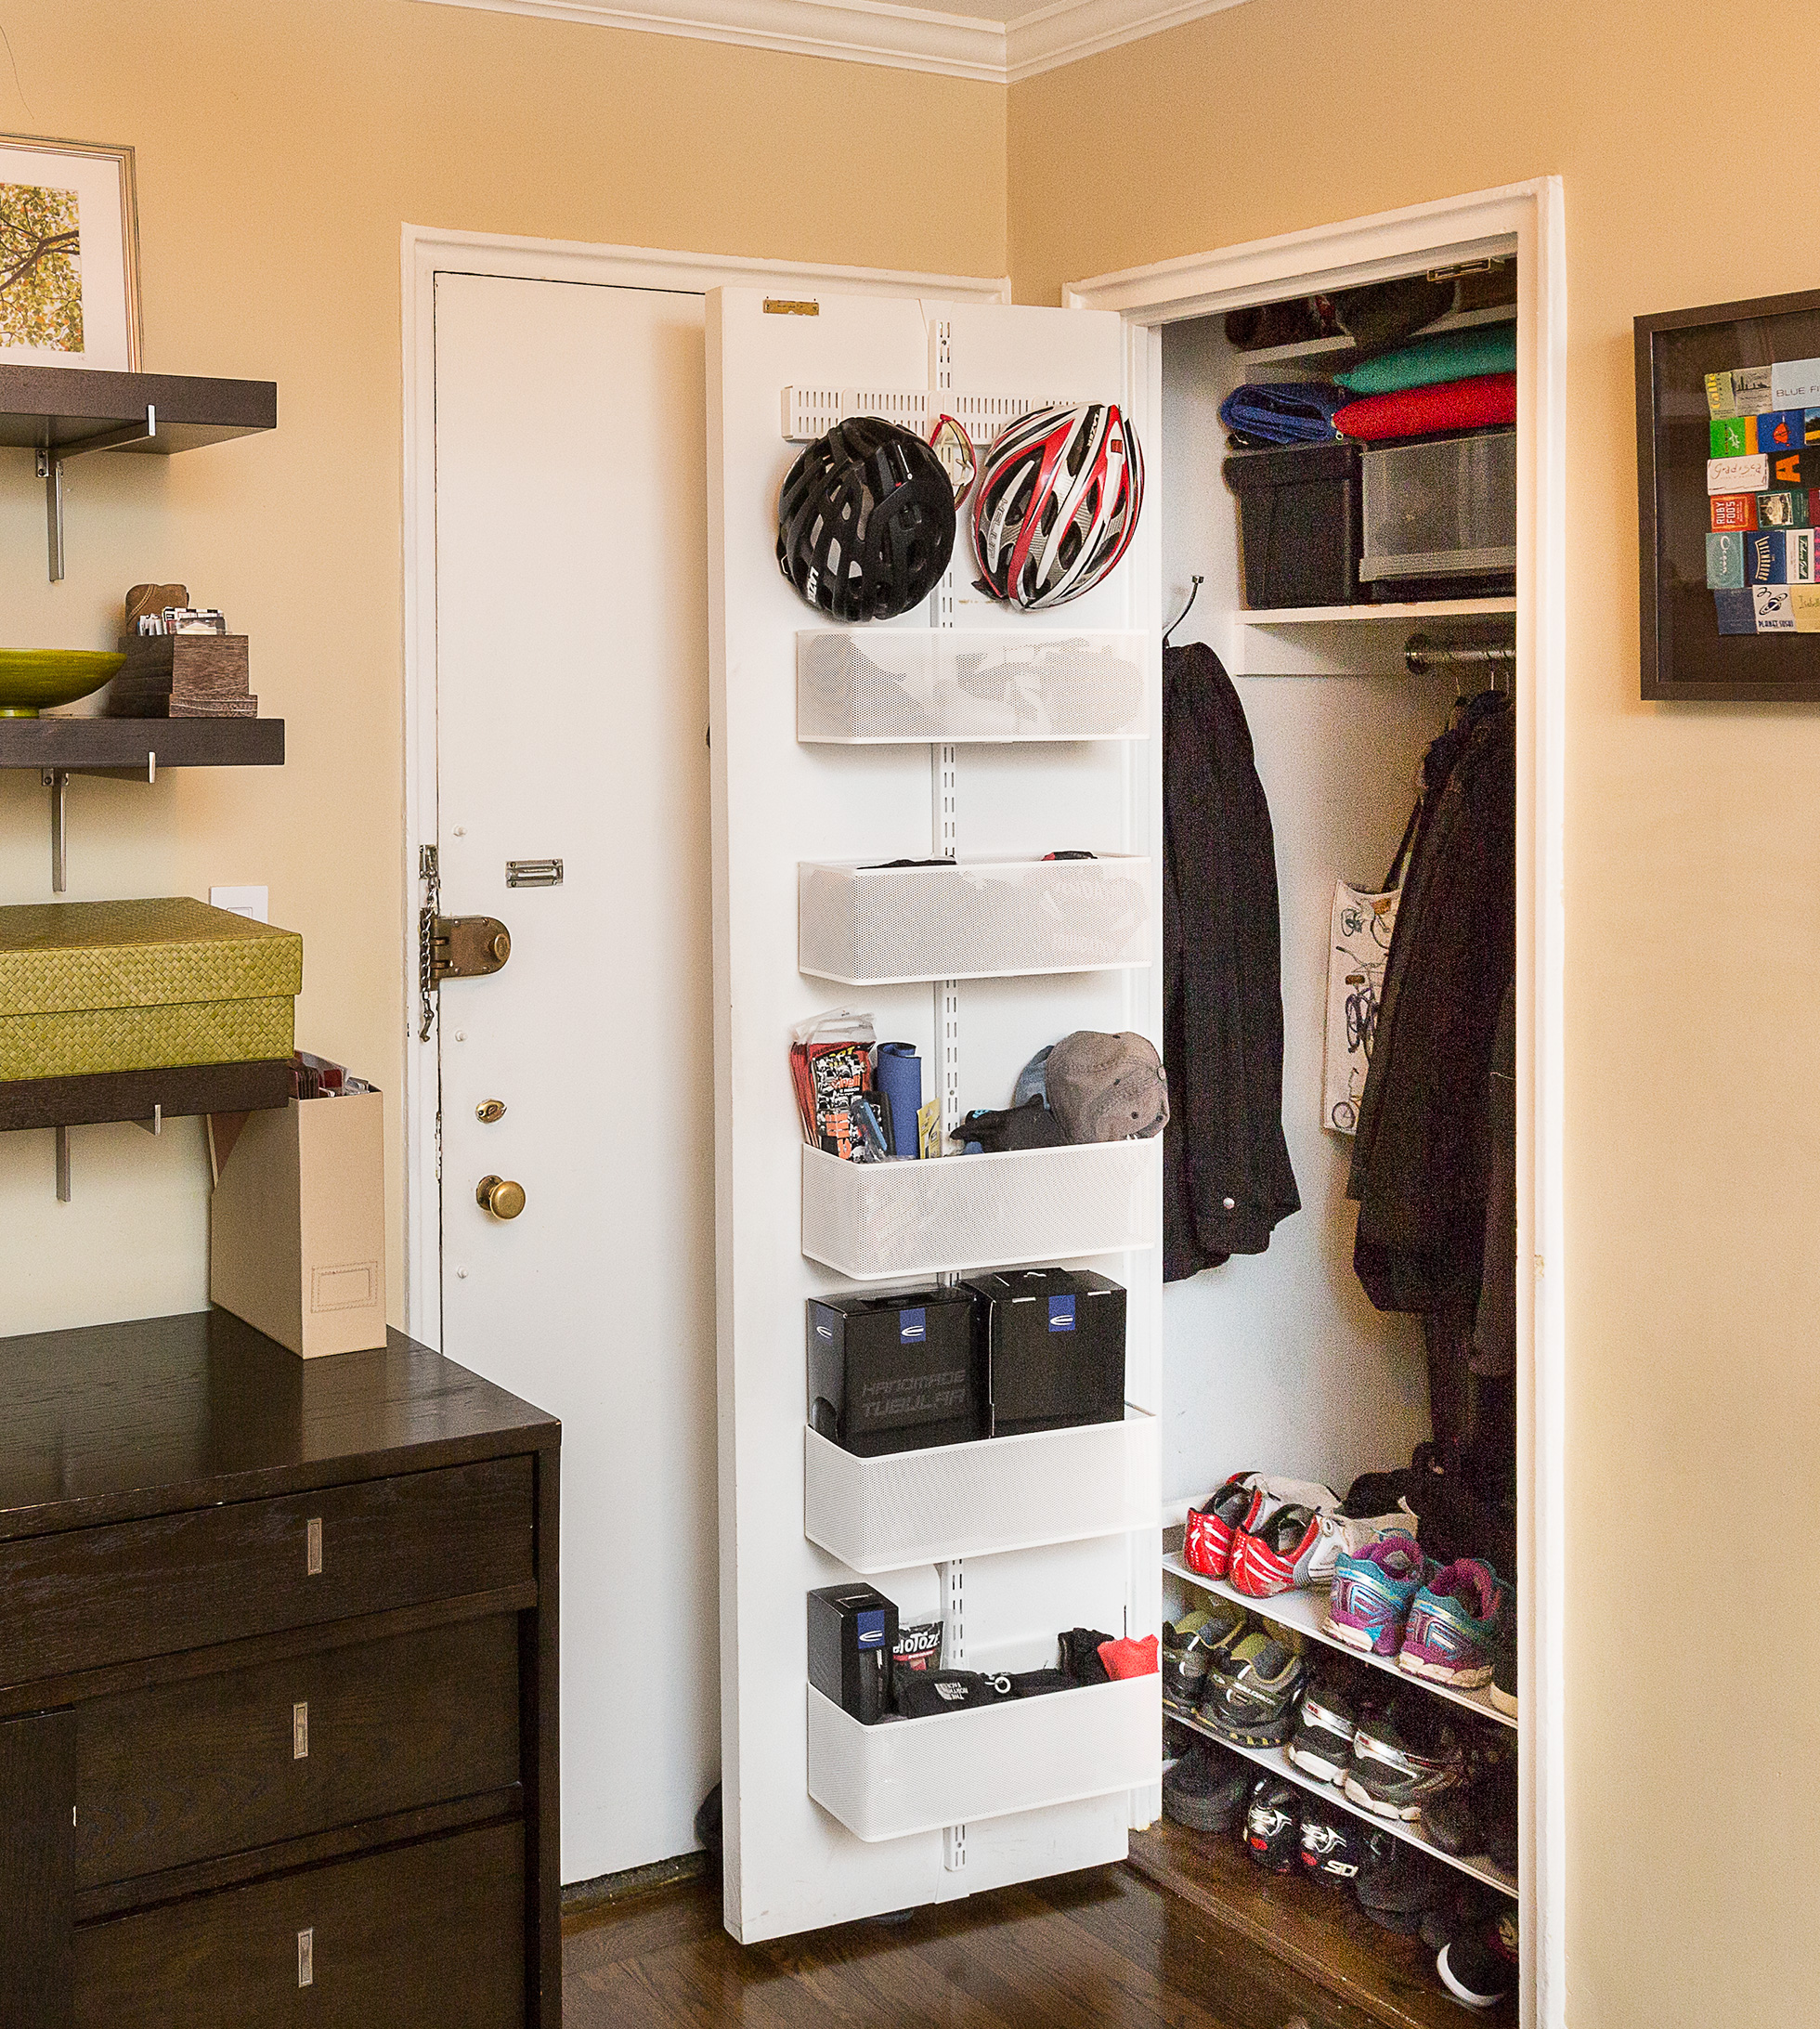 Storage Solutions Storage Solutions For Small Spaces Home Organizing Ideas